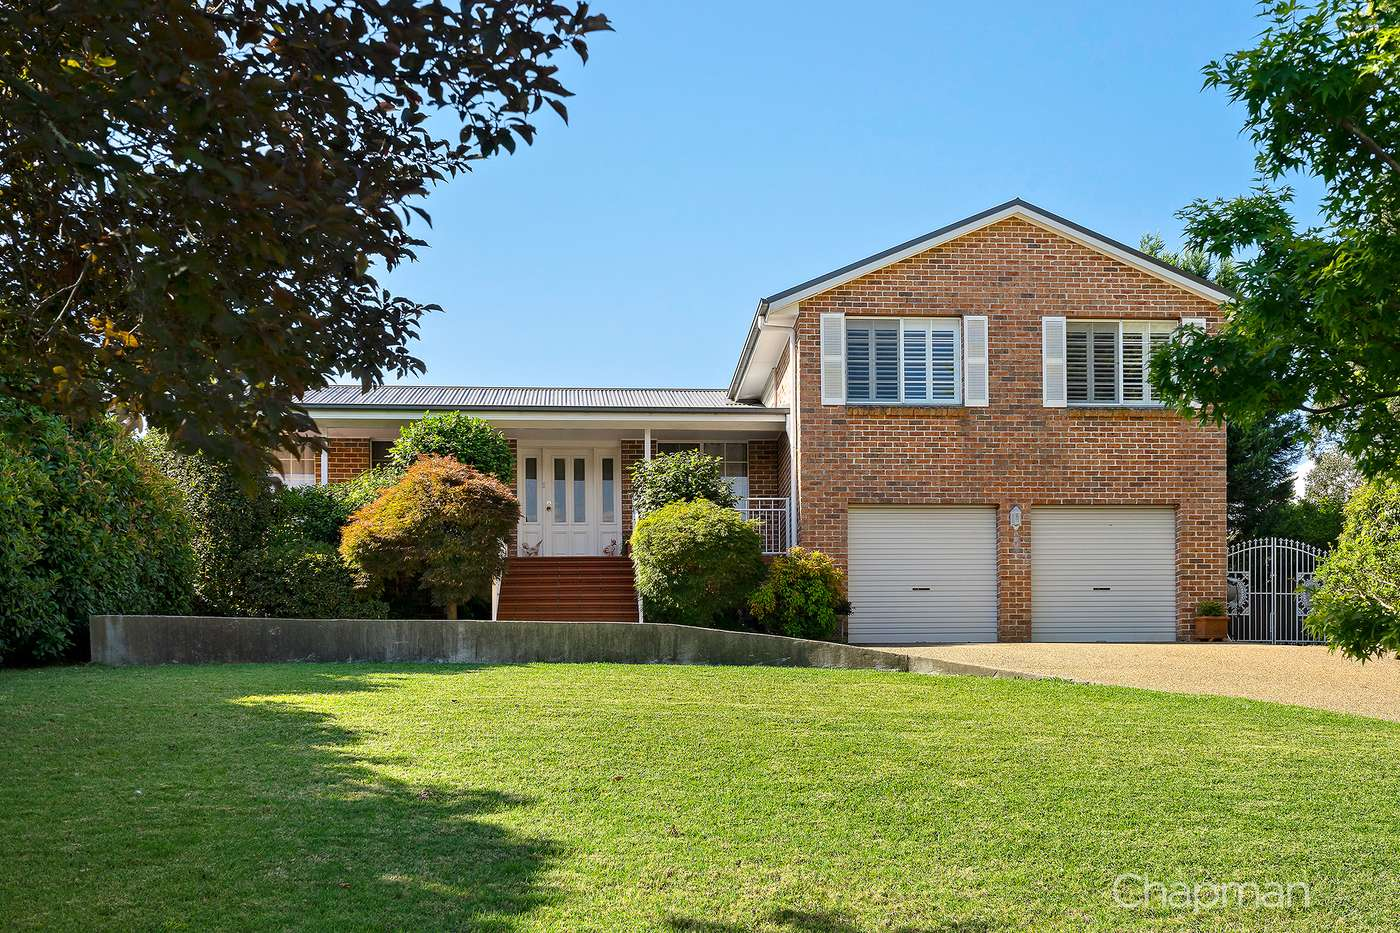 Main view of Homely house listing, 22 Falkland Close, Winmalee, NSW 2777